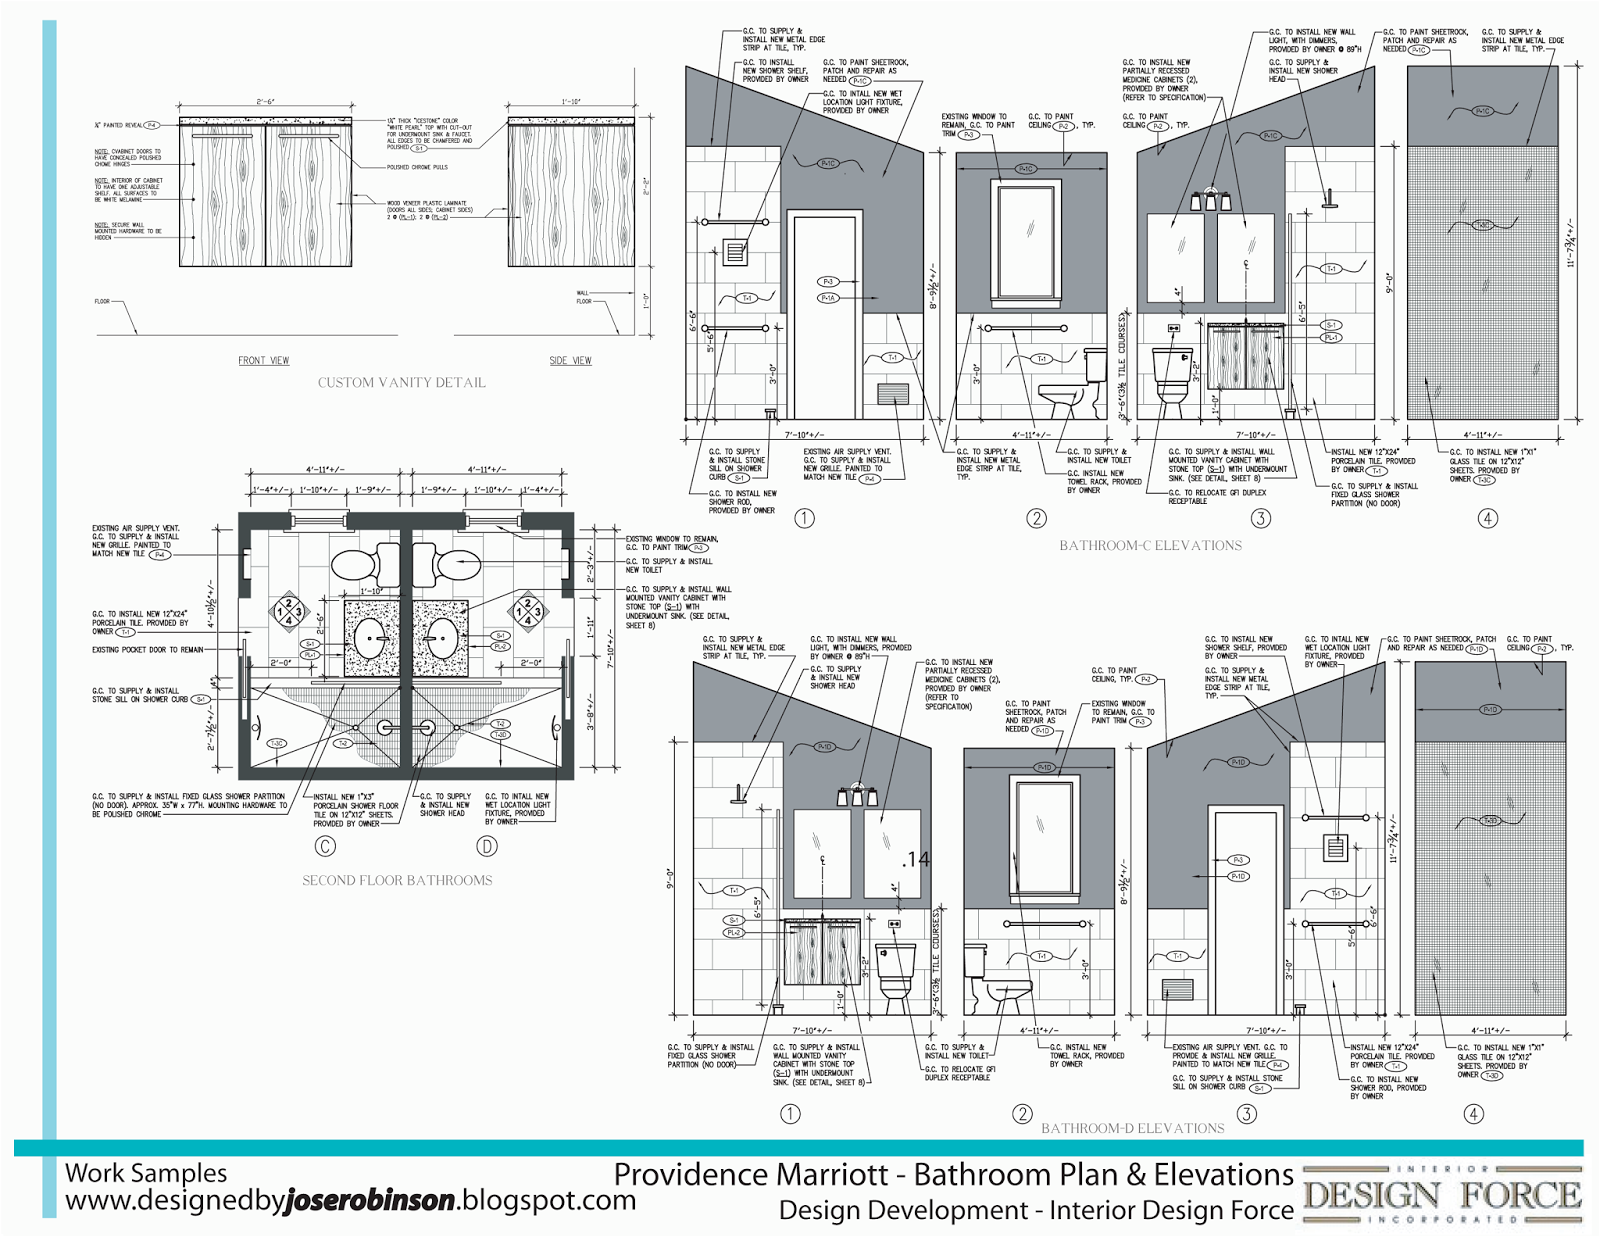 medium resolution of in one of my college design space planning classes the project was to convert two apartments in to one open more lofty apartment with a home office for